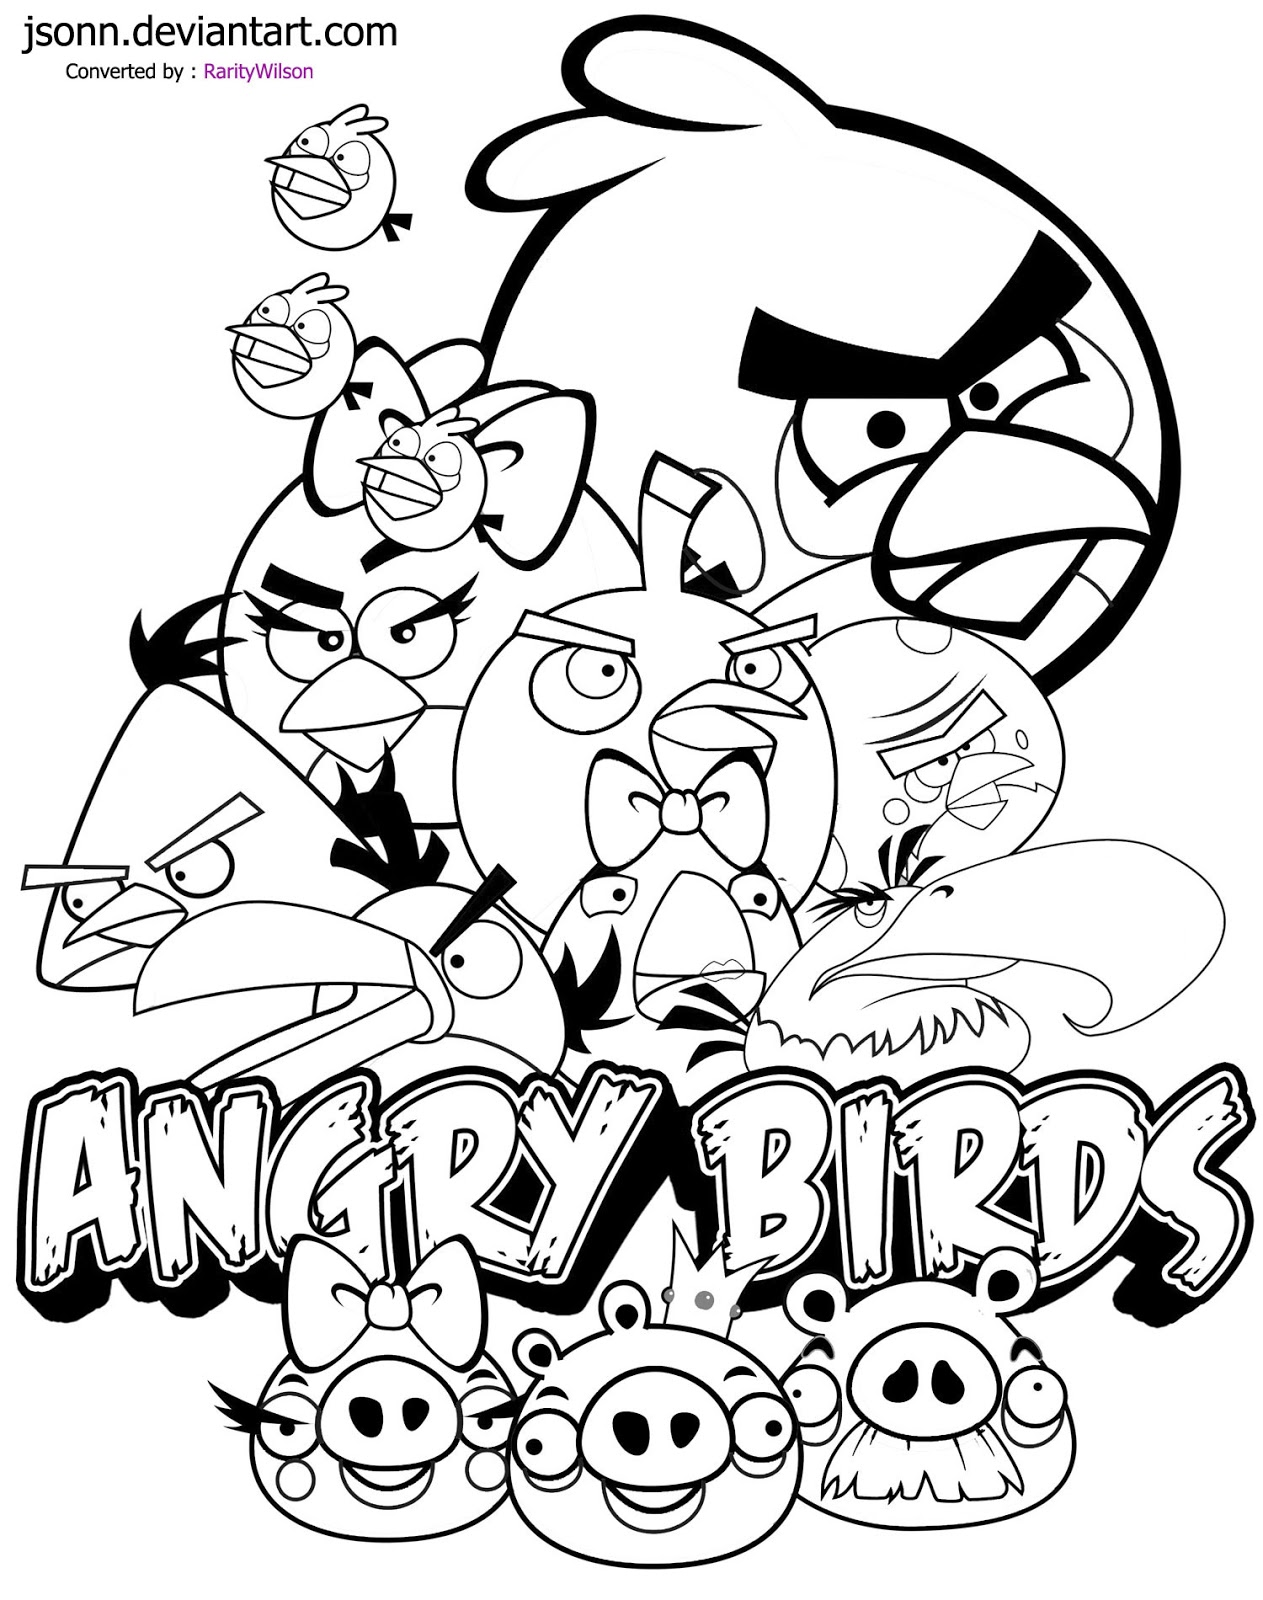 coloring pages angry birds printable - photo#5